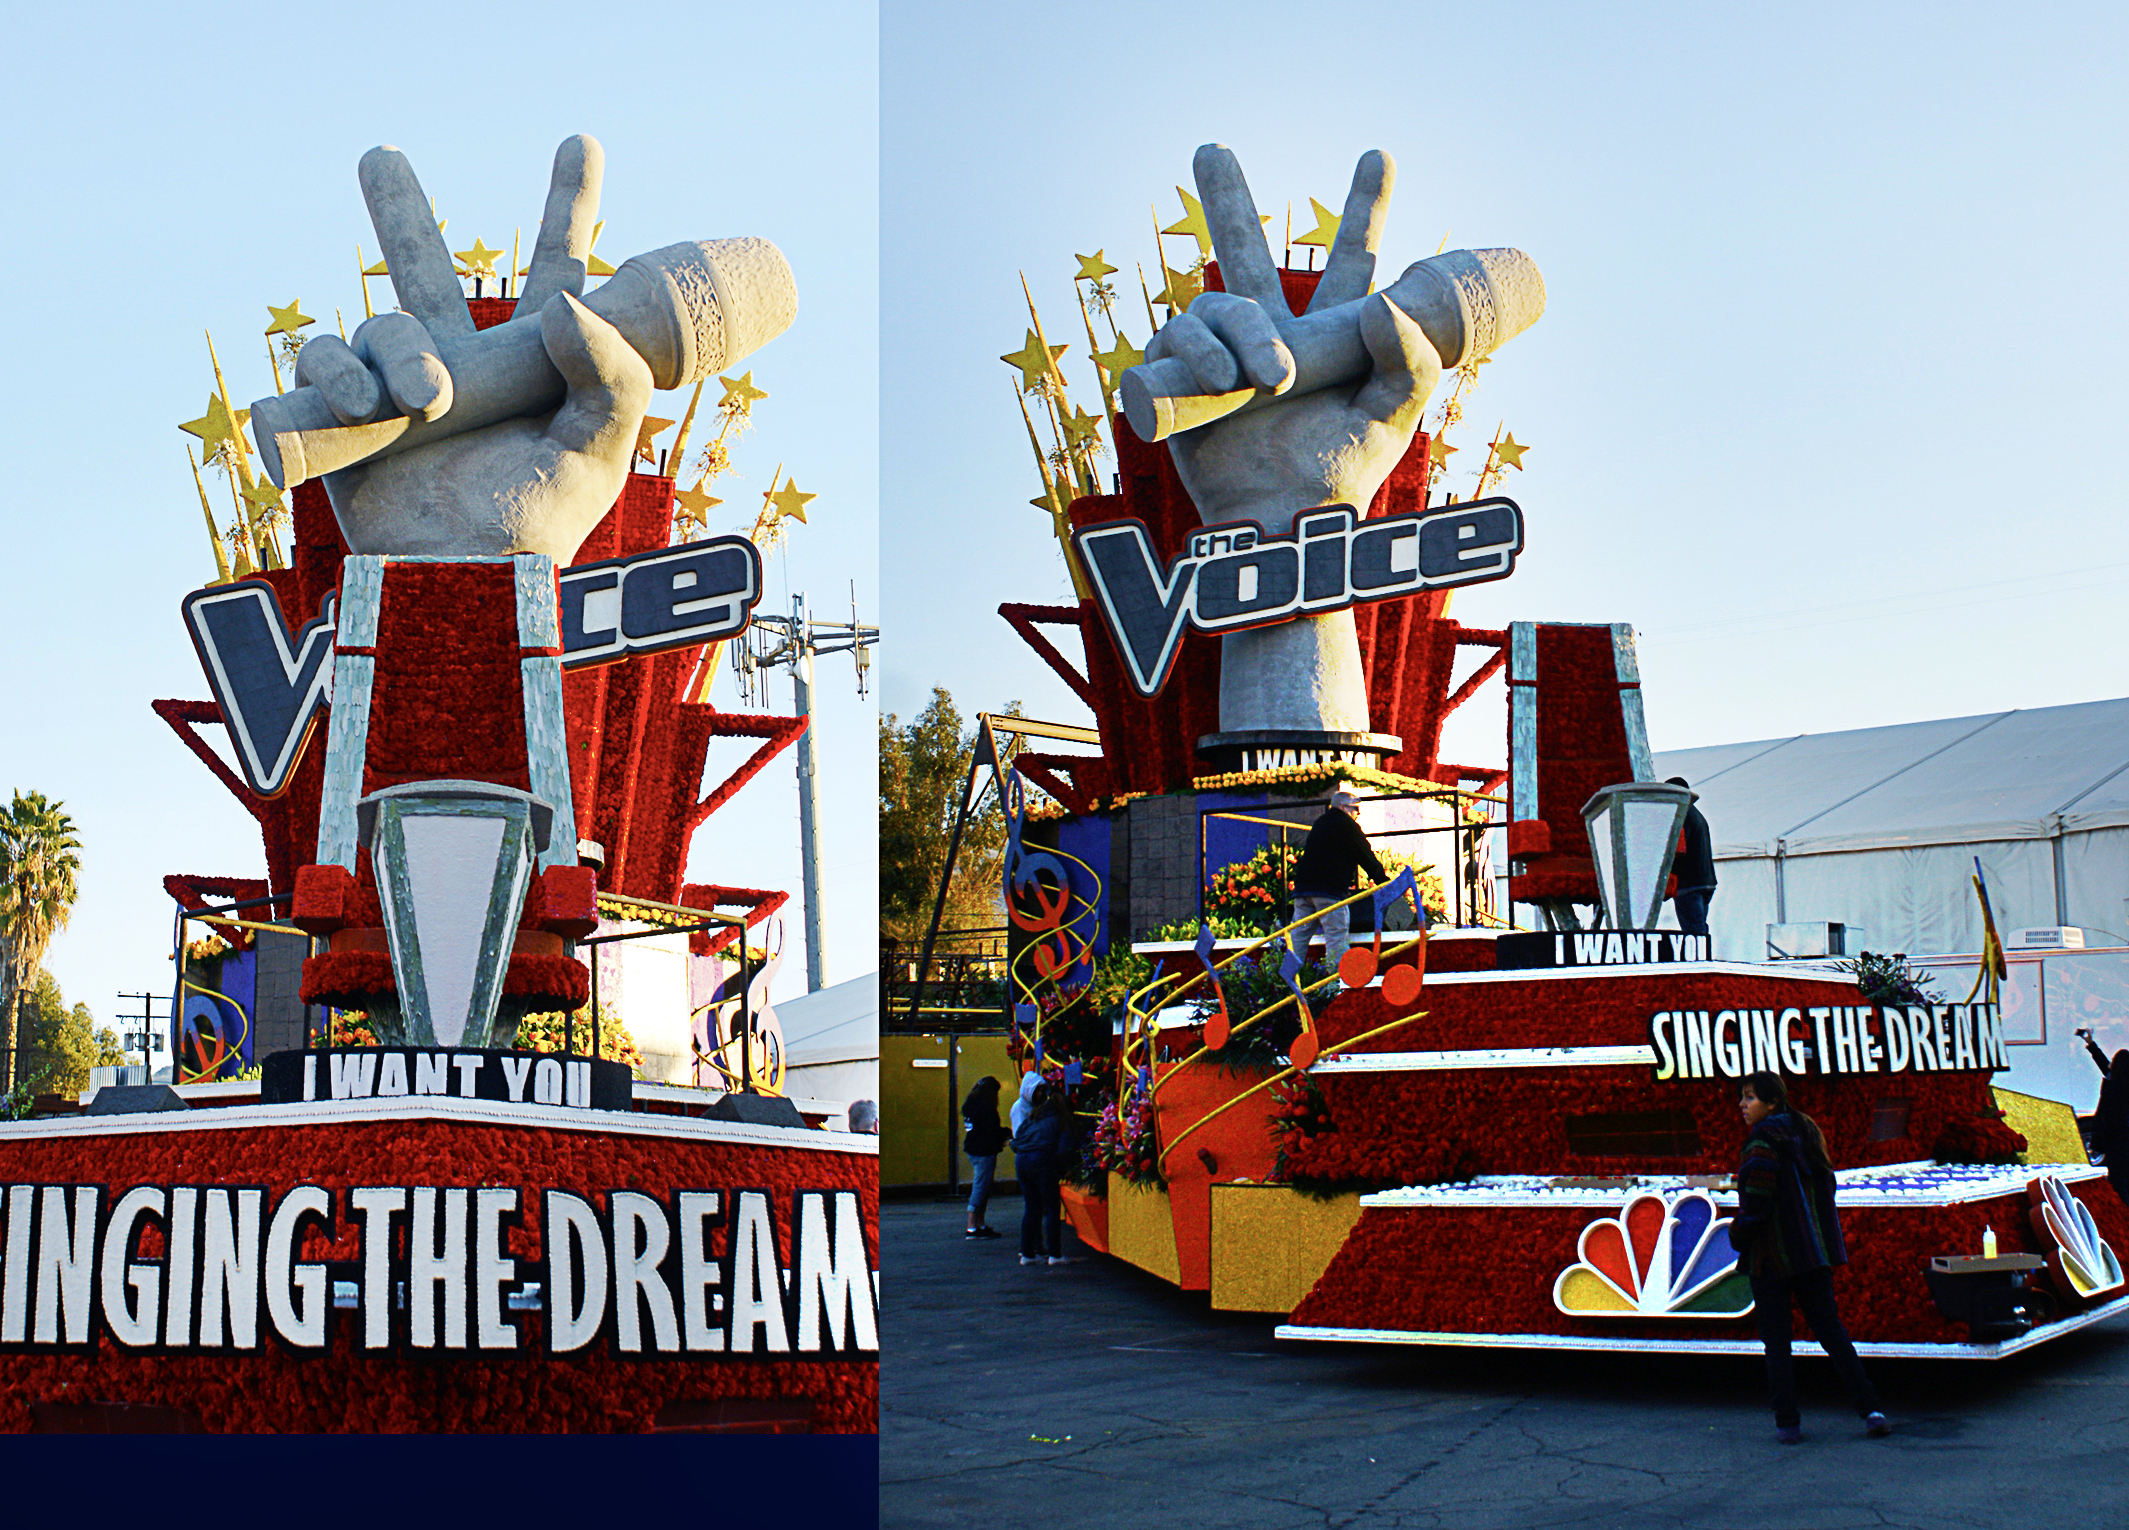 roseparade winning entries-the voice 3.jpg